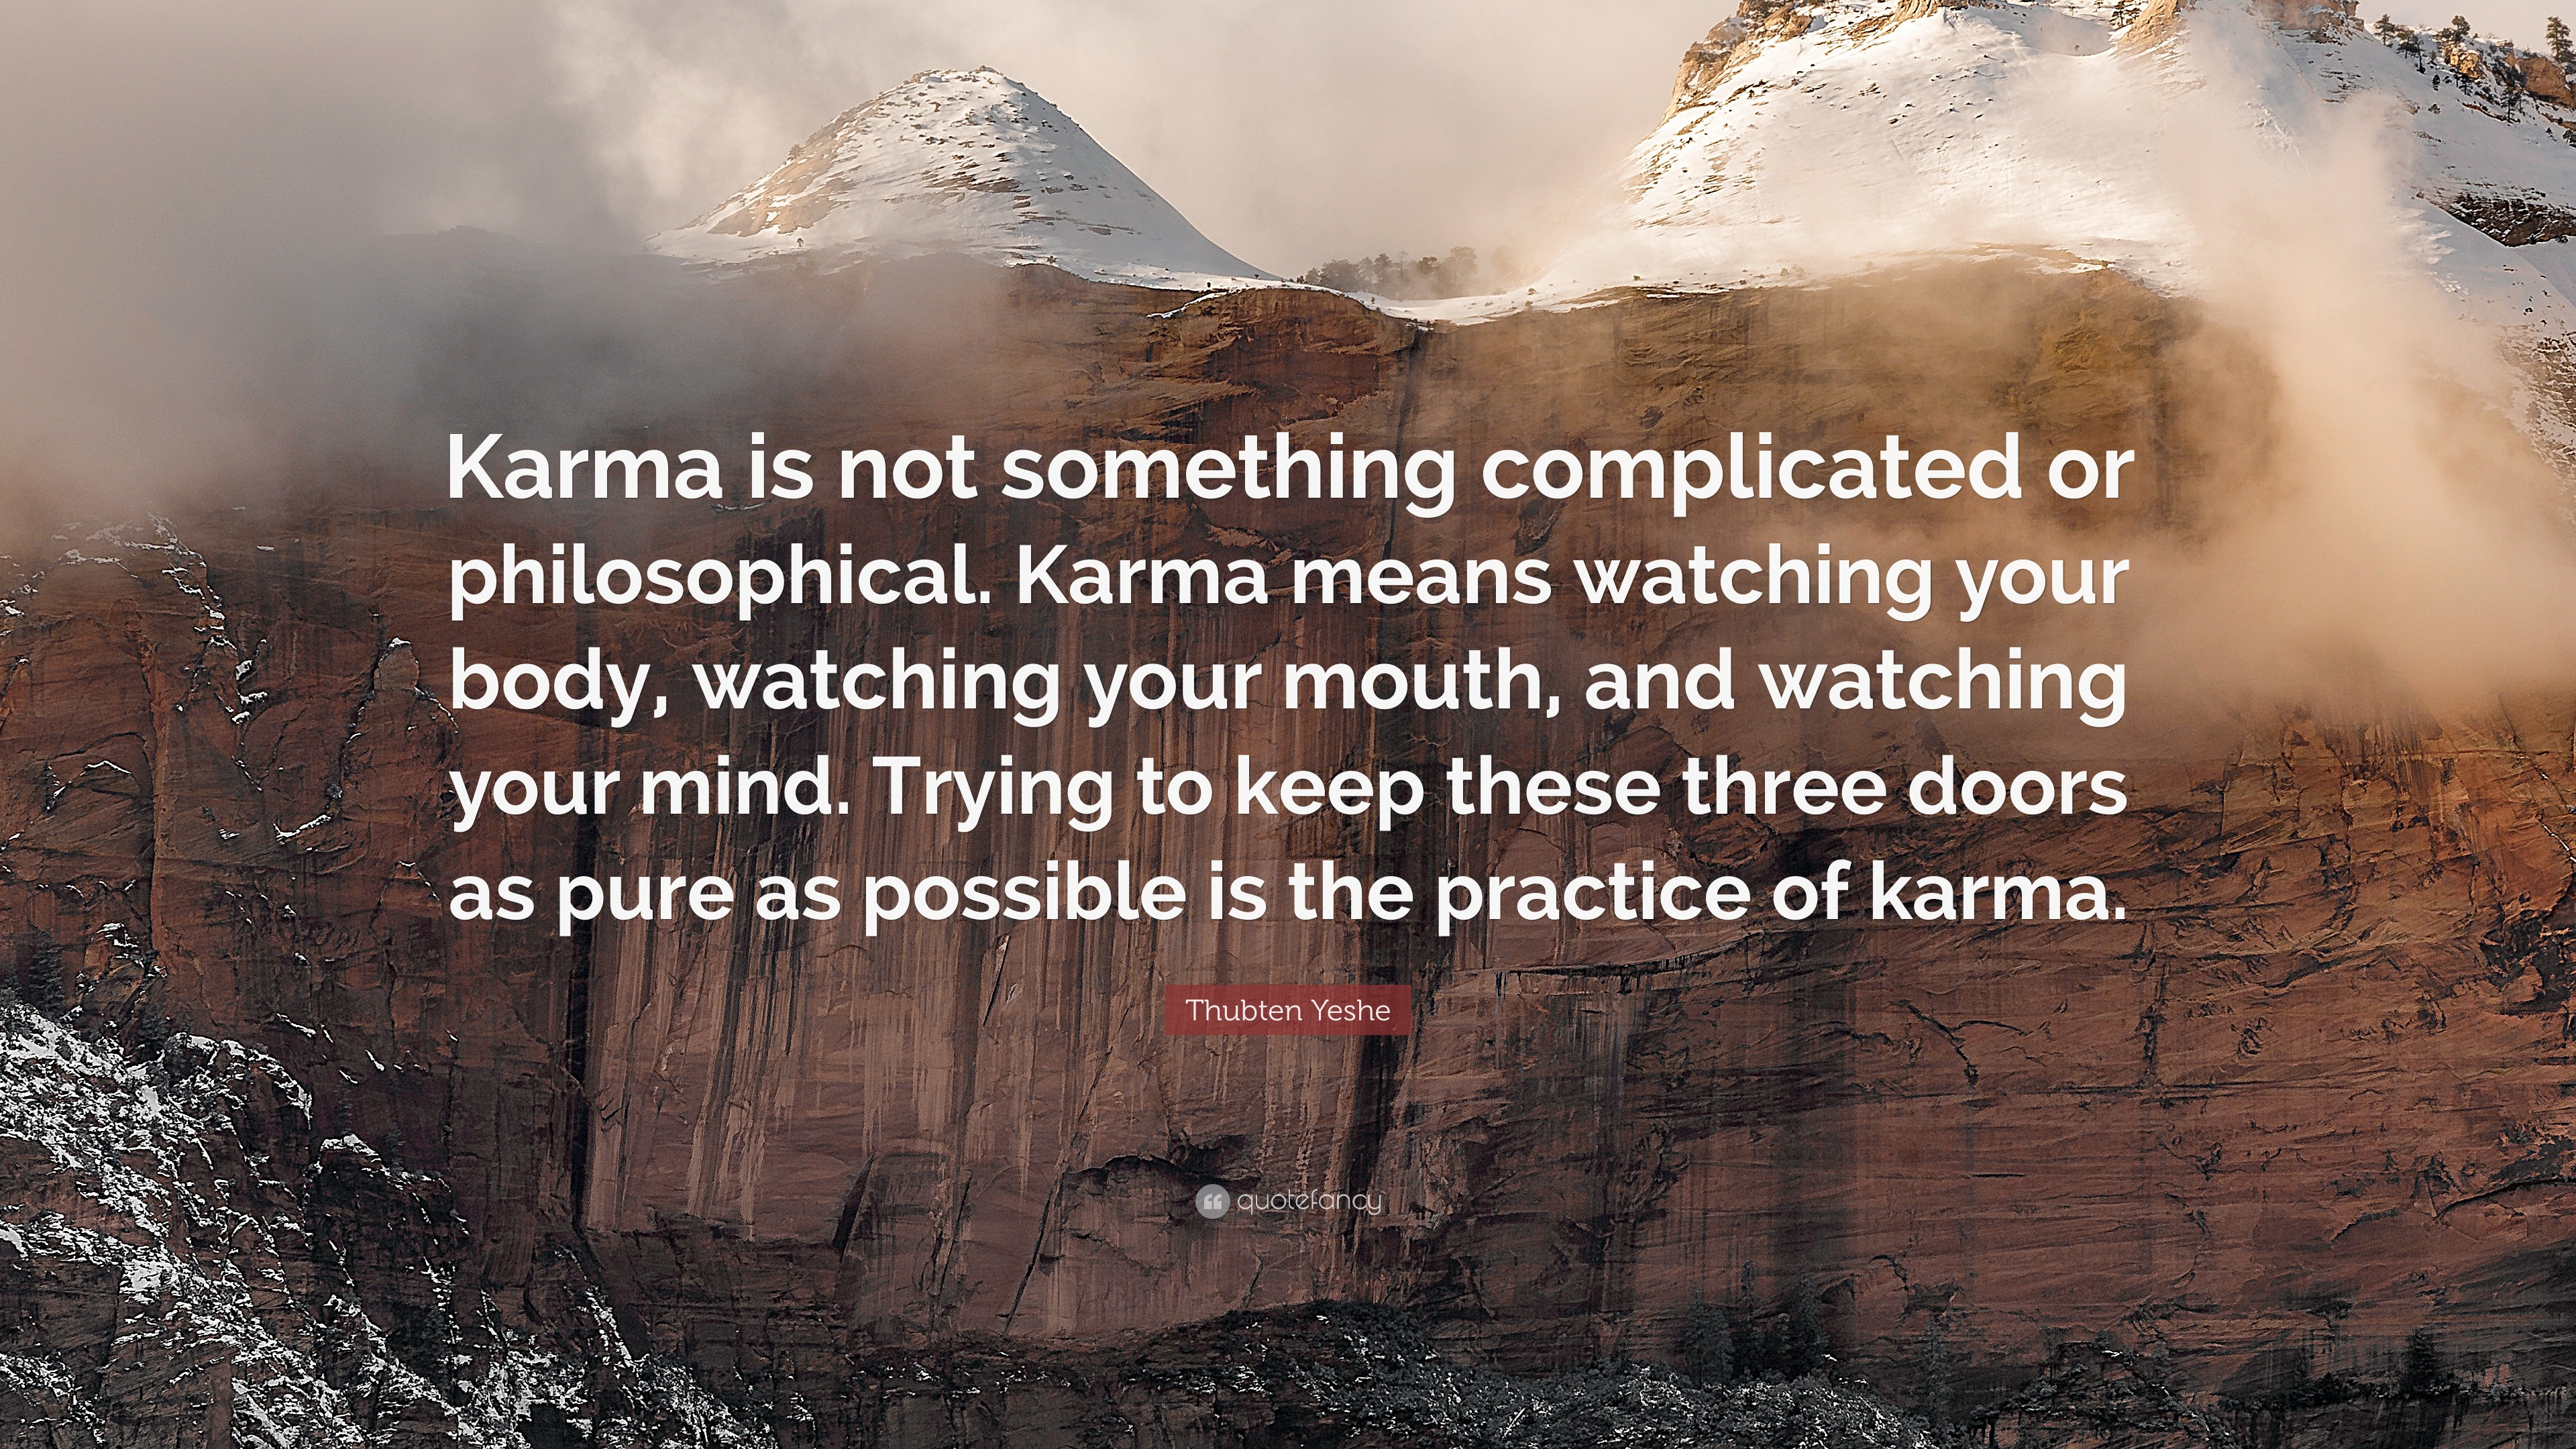 Karma Quotes Sayings: Karma Quotes (40 Wallpapers)